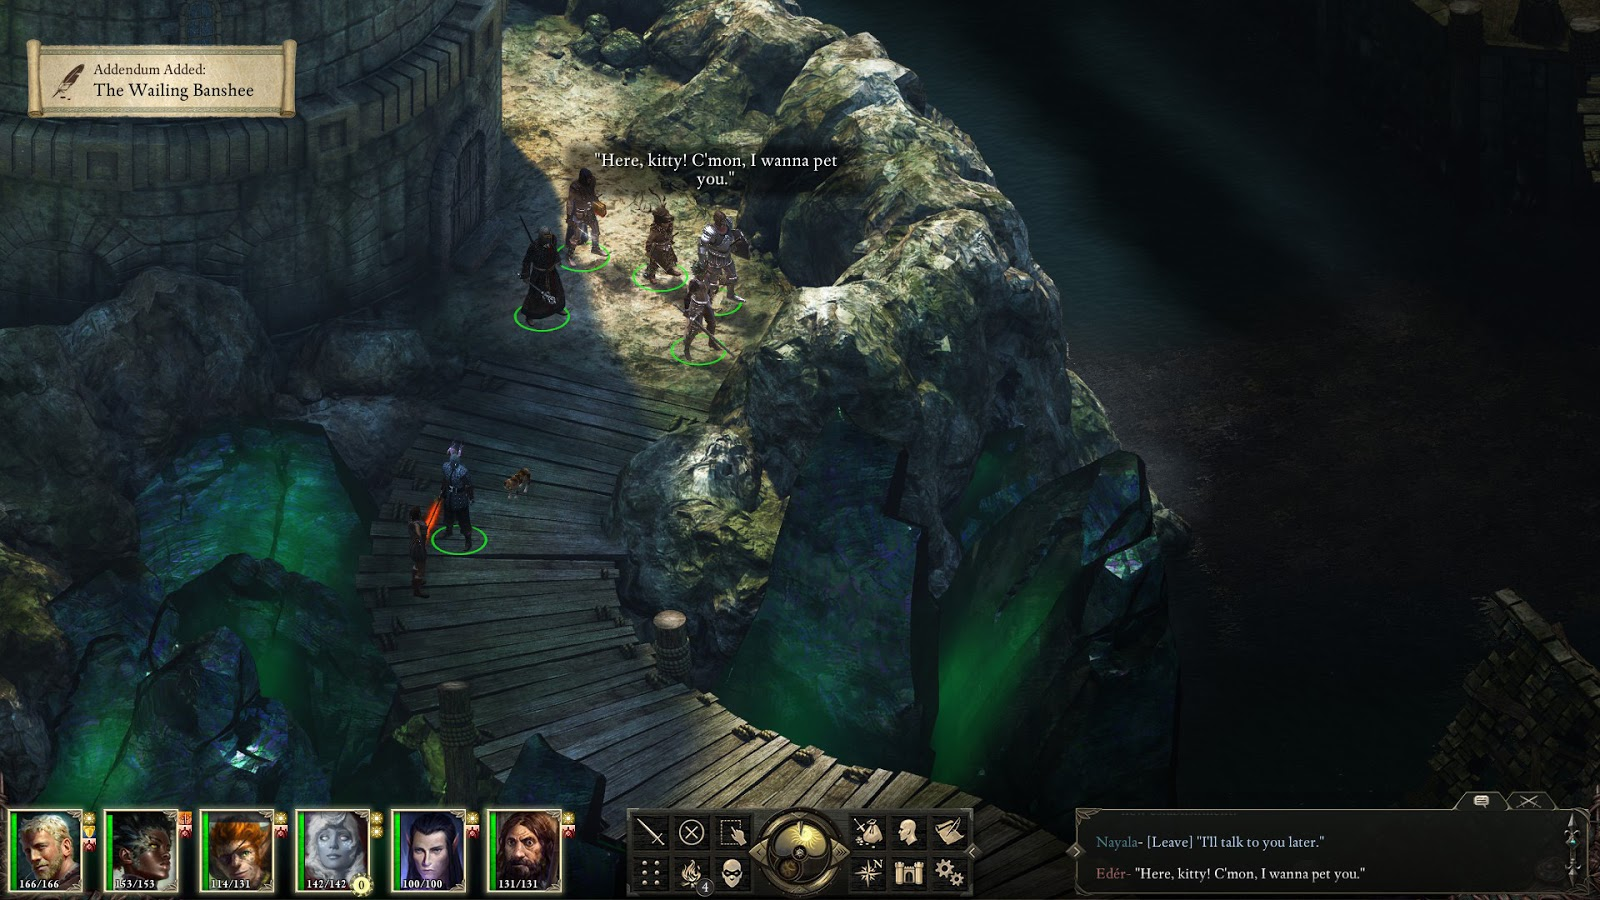 Pillars Of Eternity Background: The Nocturnal Rambler: Pillars Of Eternity Review